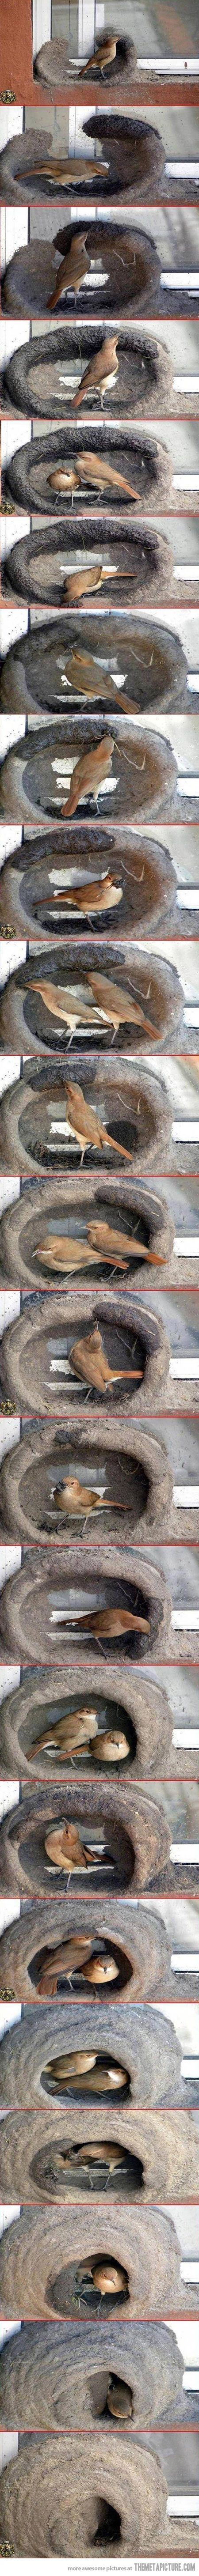 """Horneros are brown birds with rather short tails and fairly long bills. They are known for building mud nests that resemble old wood-fired ovens (the Spanish word """"hornero"""" comes from horno, meaning """"oven"""")"""